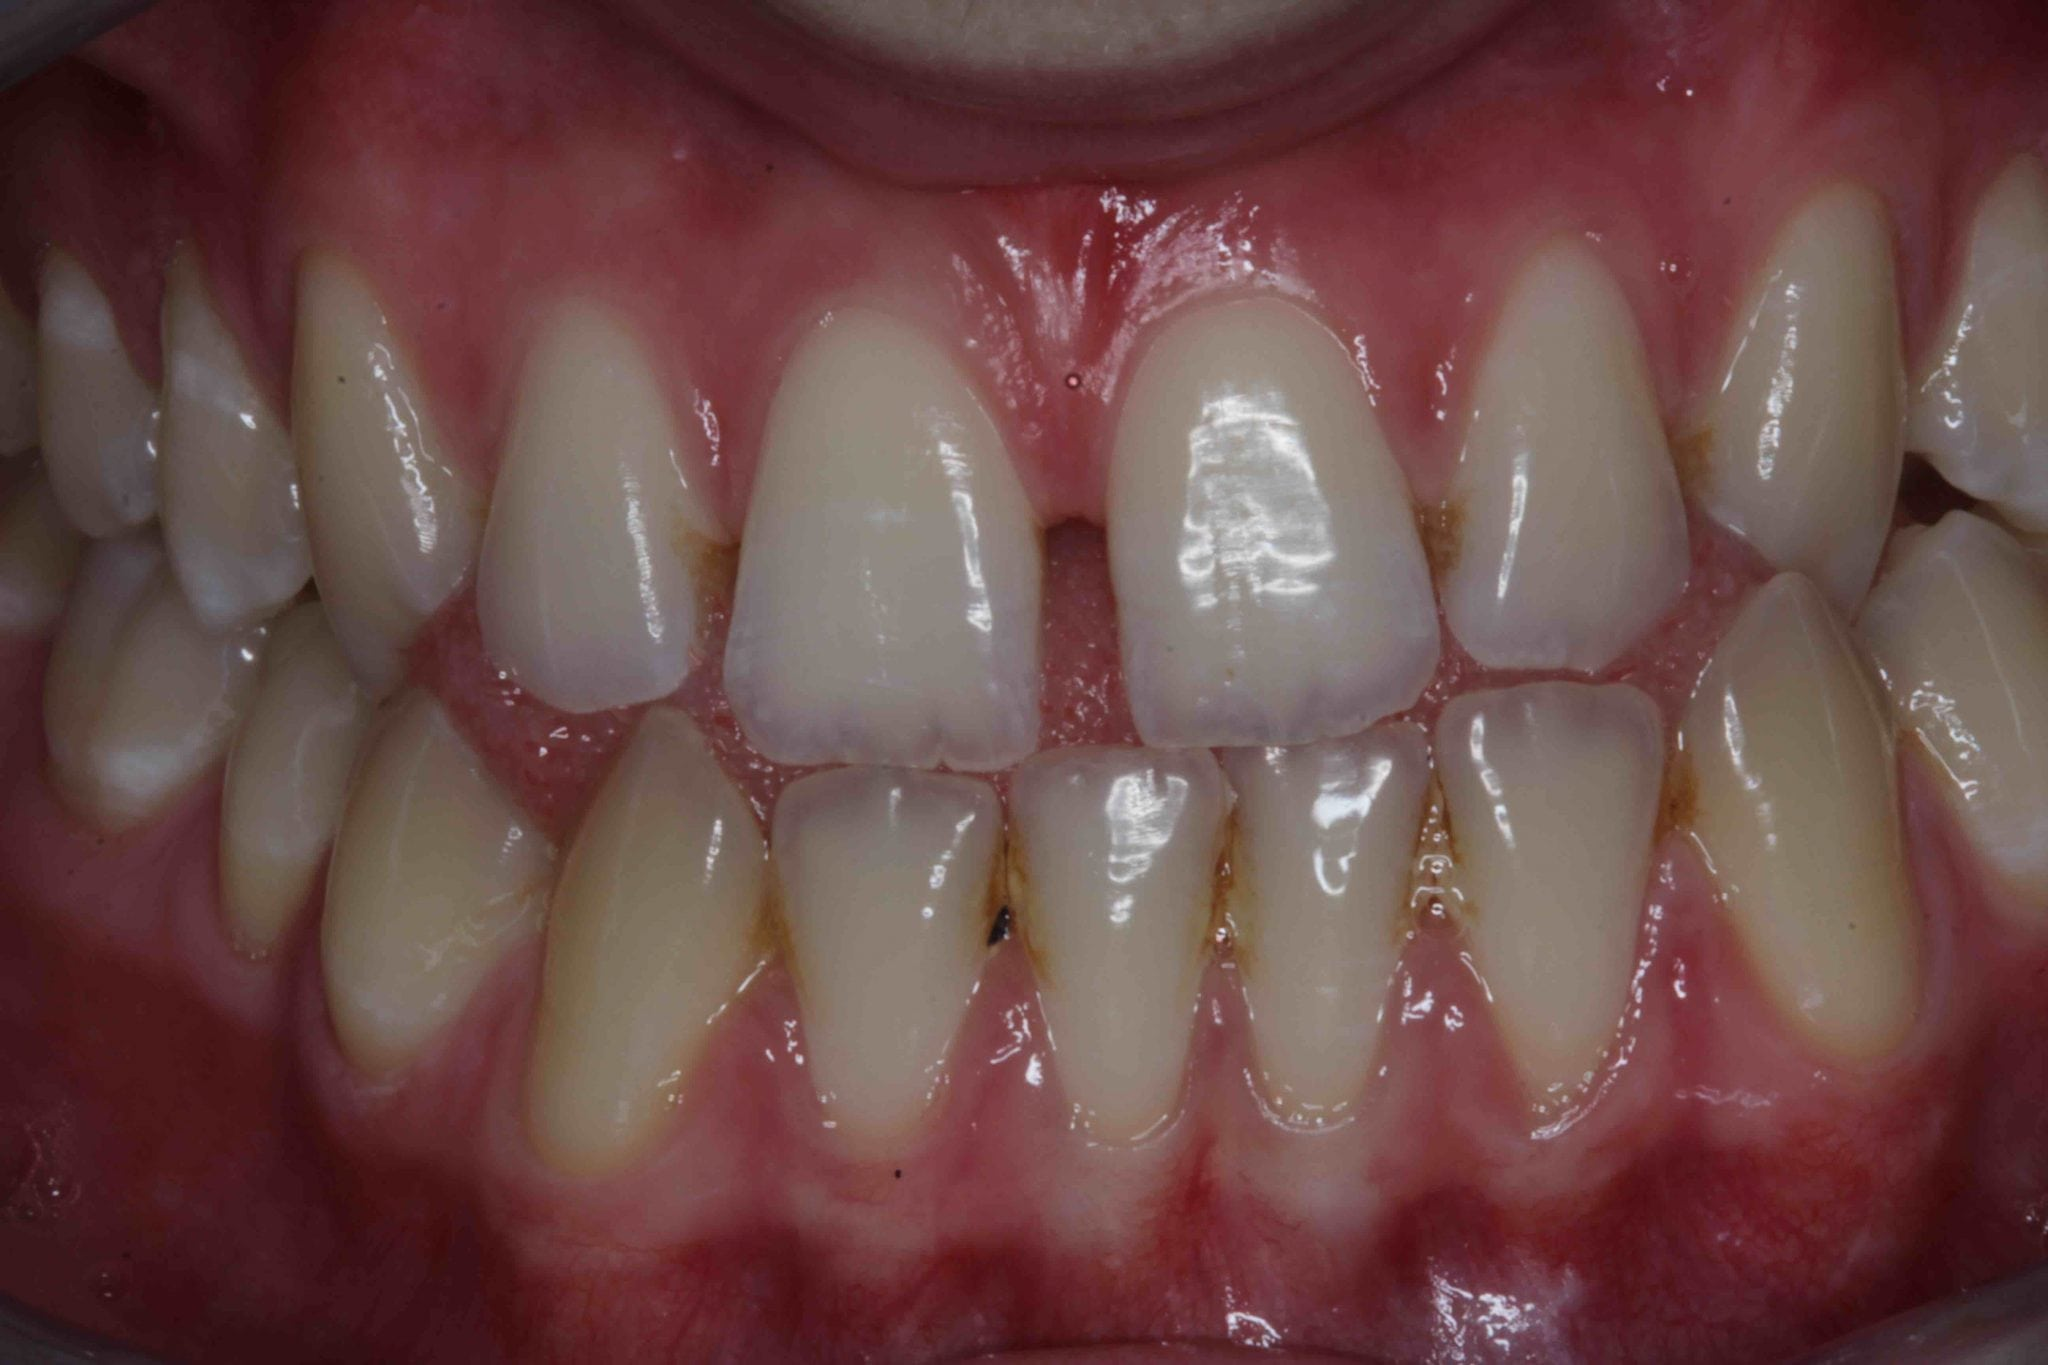 dental bonding for gapped teeth before and after treatment photos